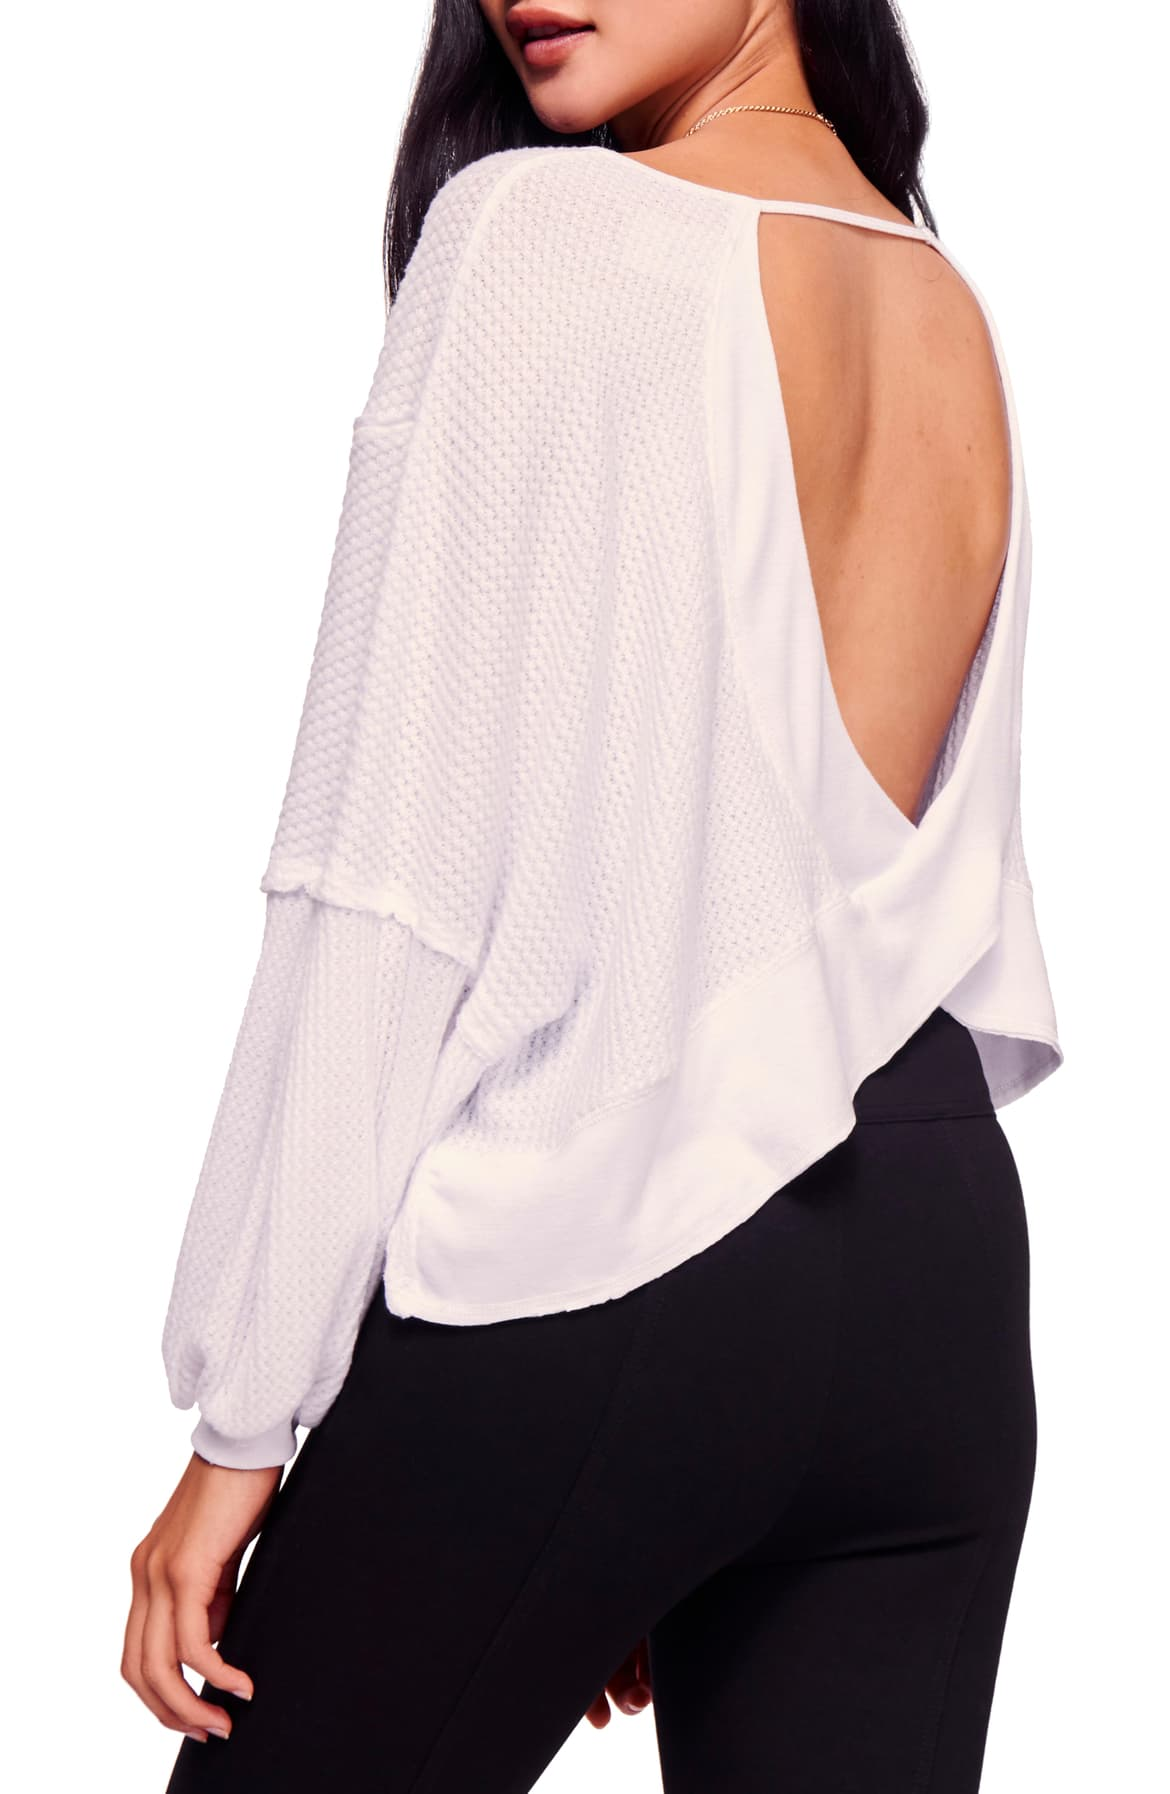 Free People Love Me Open-Back Thermal Top White - Gear Relapse